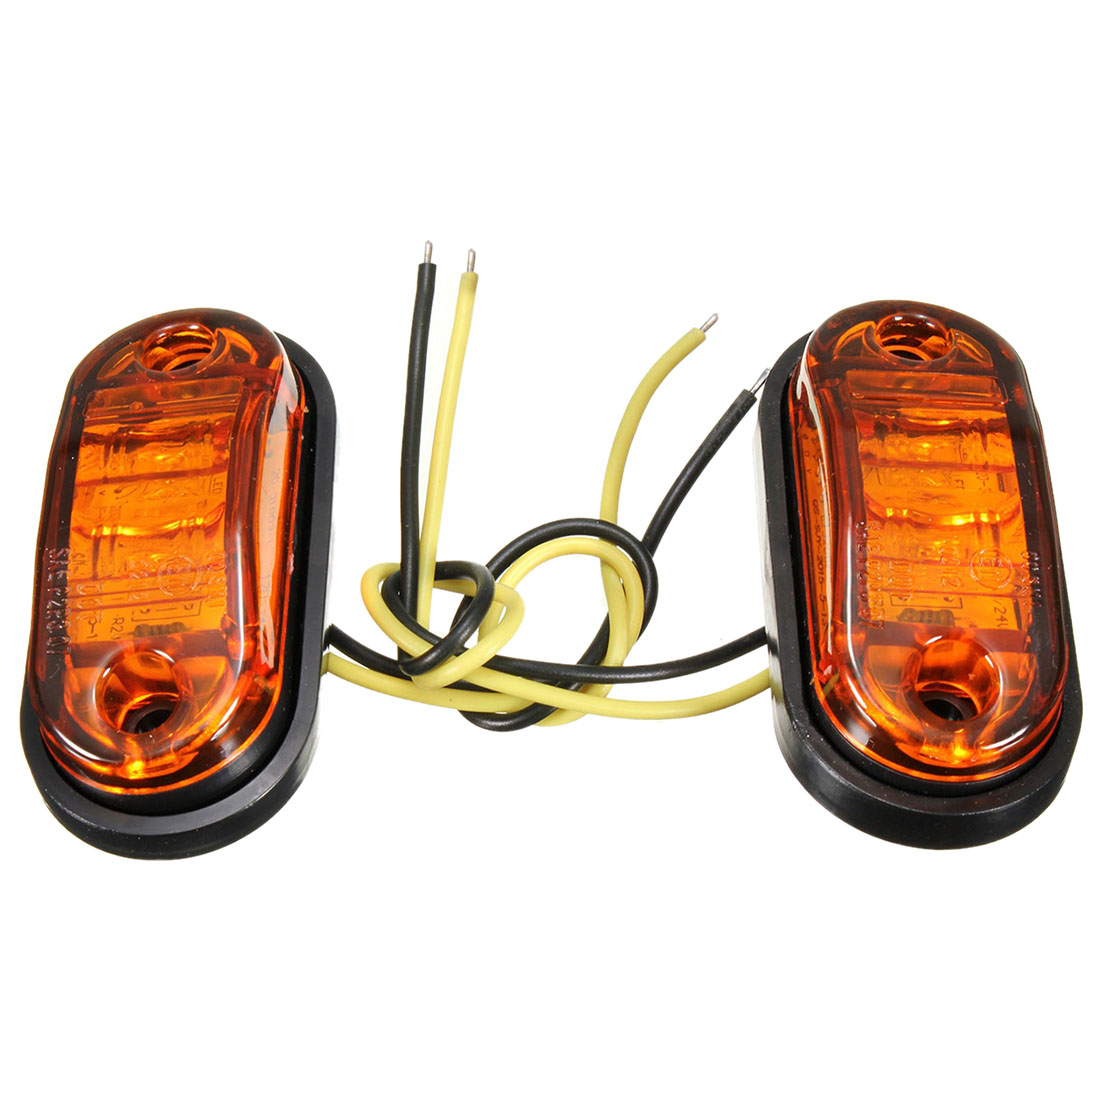 2 Light Led footprint Side Auto Truck Camper Trailer Van Amber